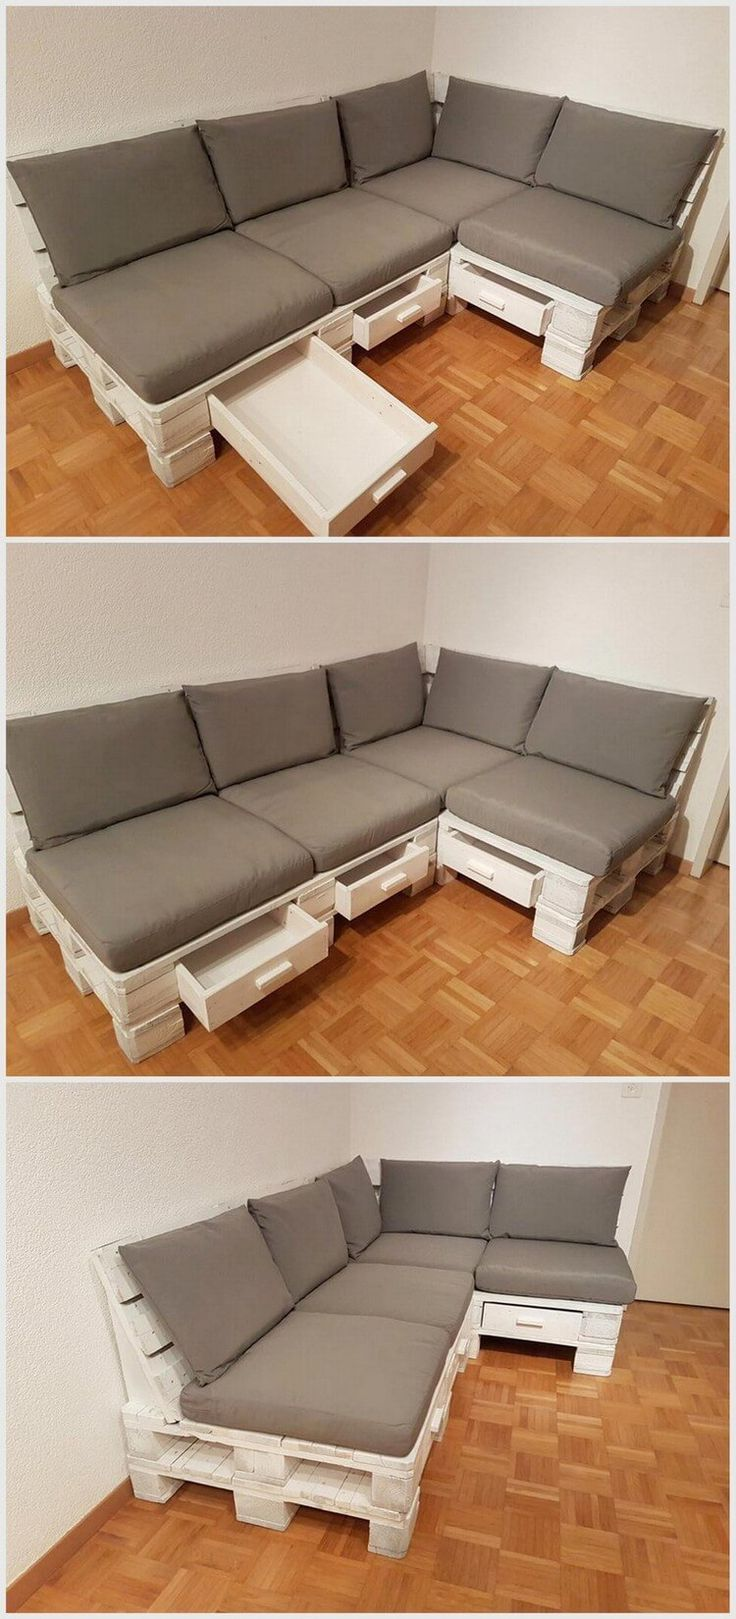 Best 25 Wooden couch ideas on Pinterest Wooden sofa Rustic